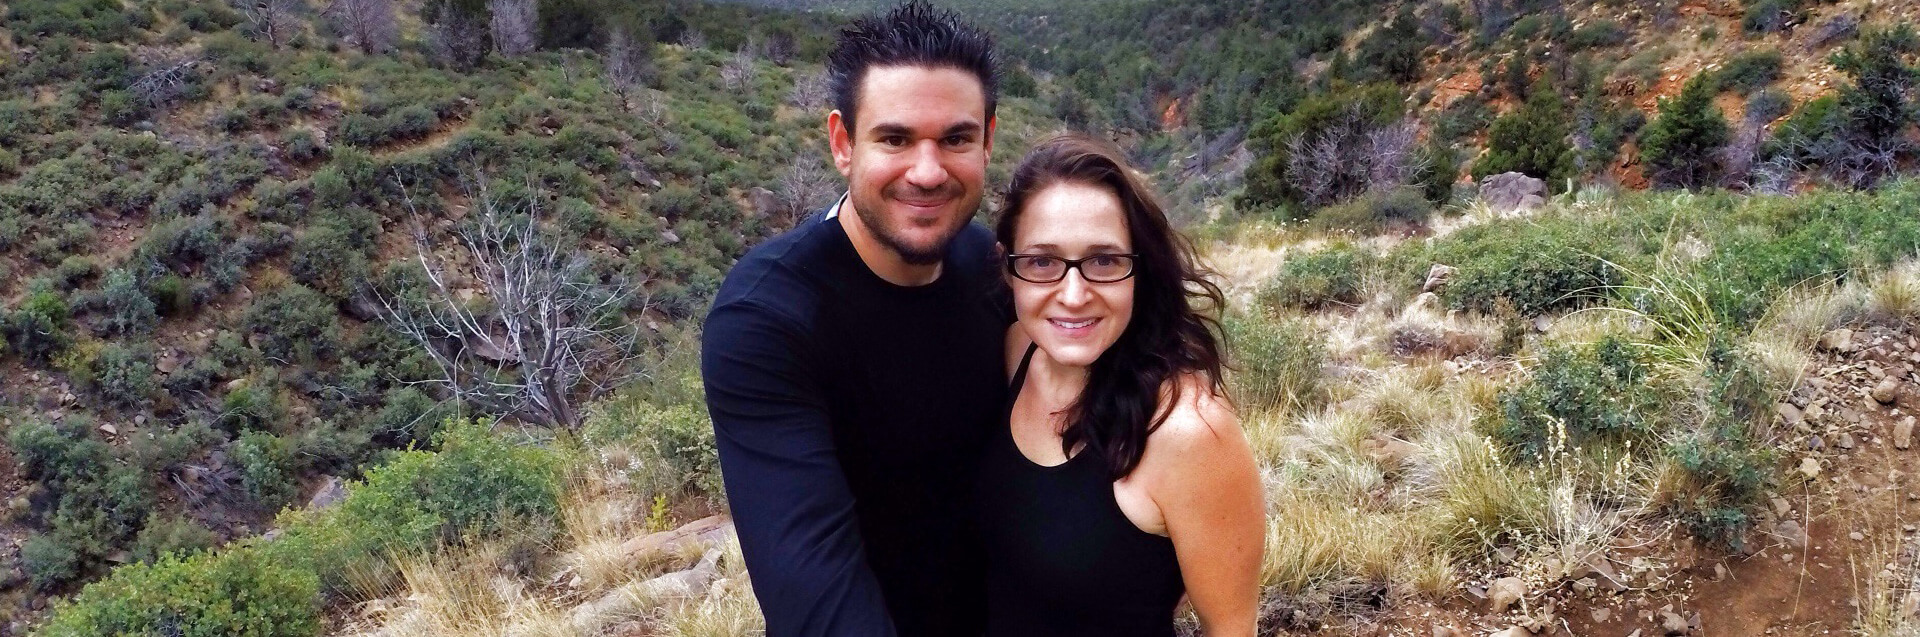 Couple hiking on a trail in Sedona wilderness.